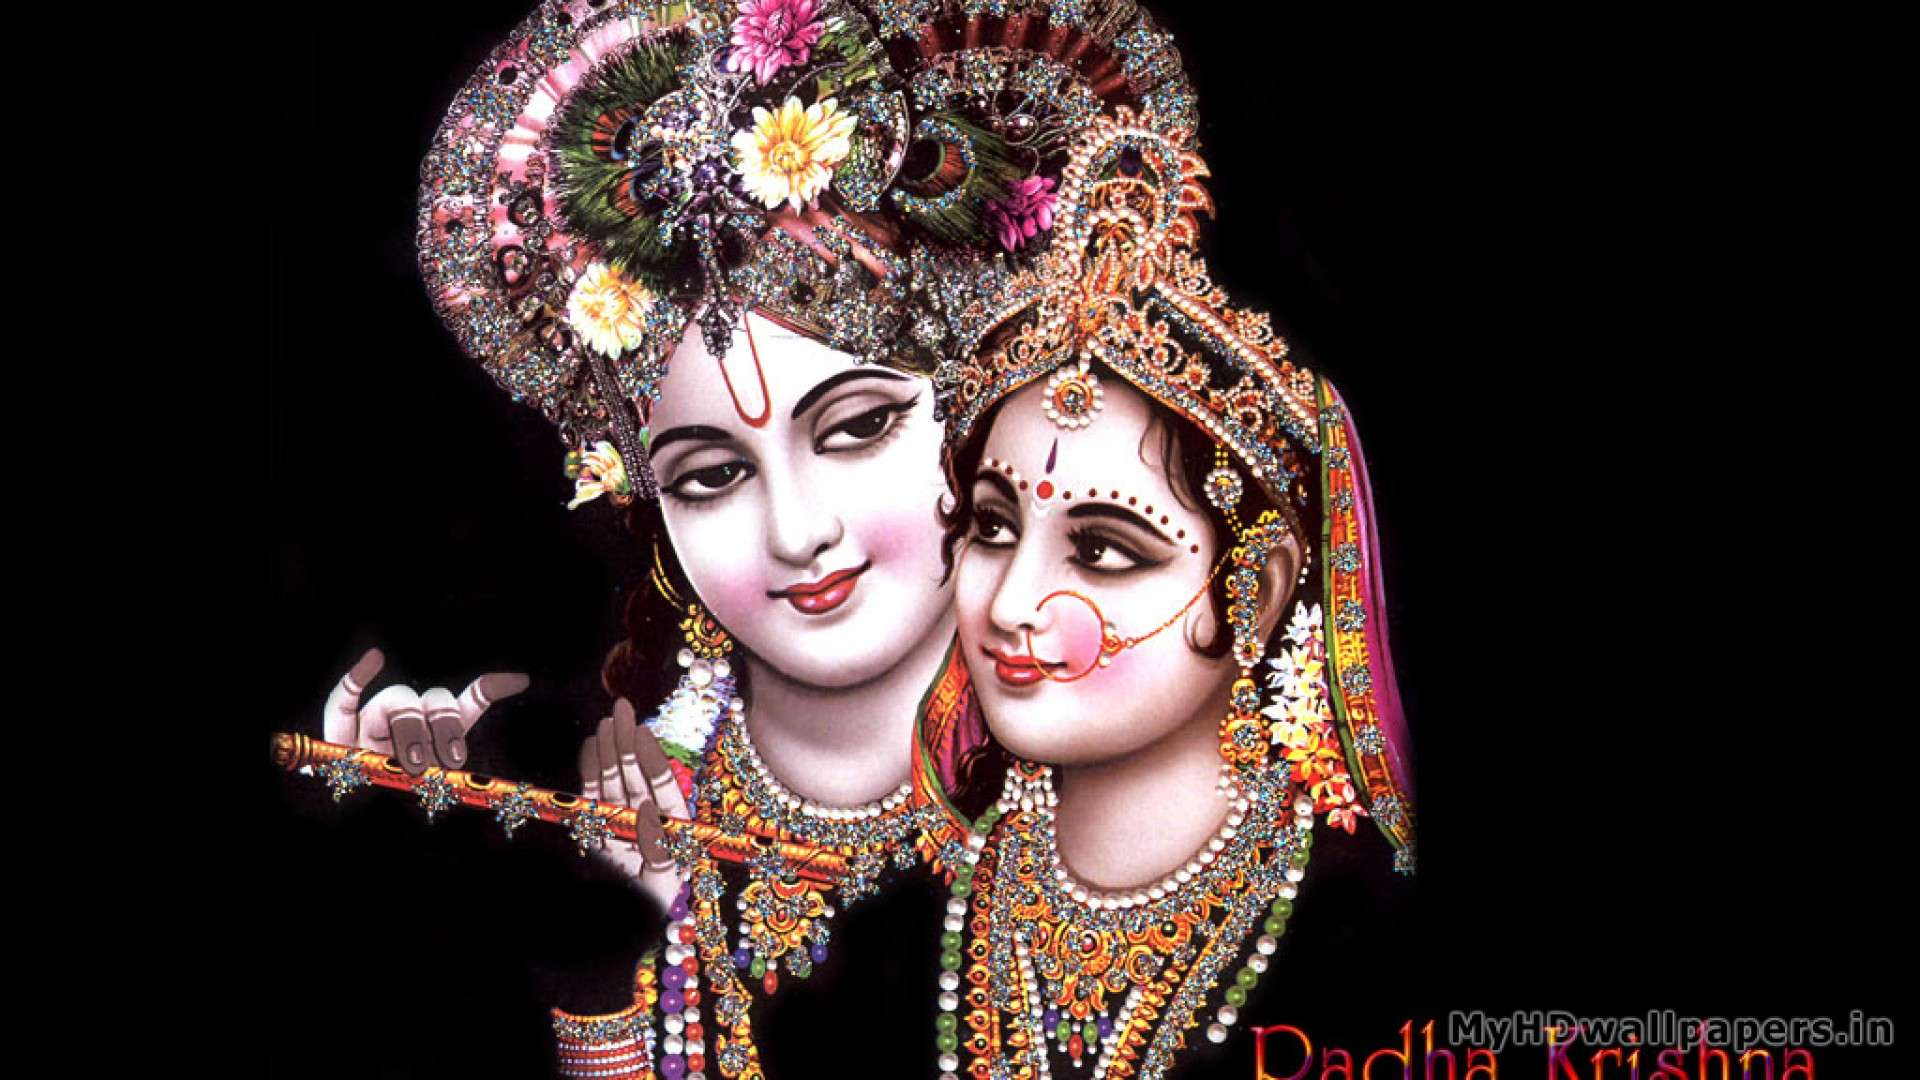 to radha krishna wallpapers - photo #19